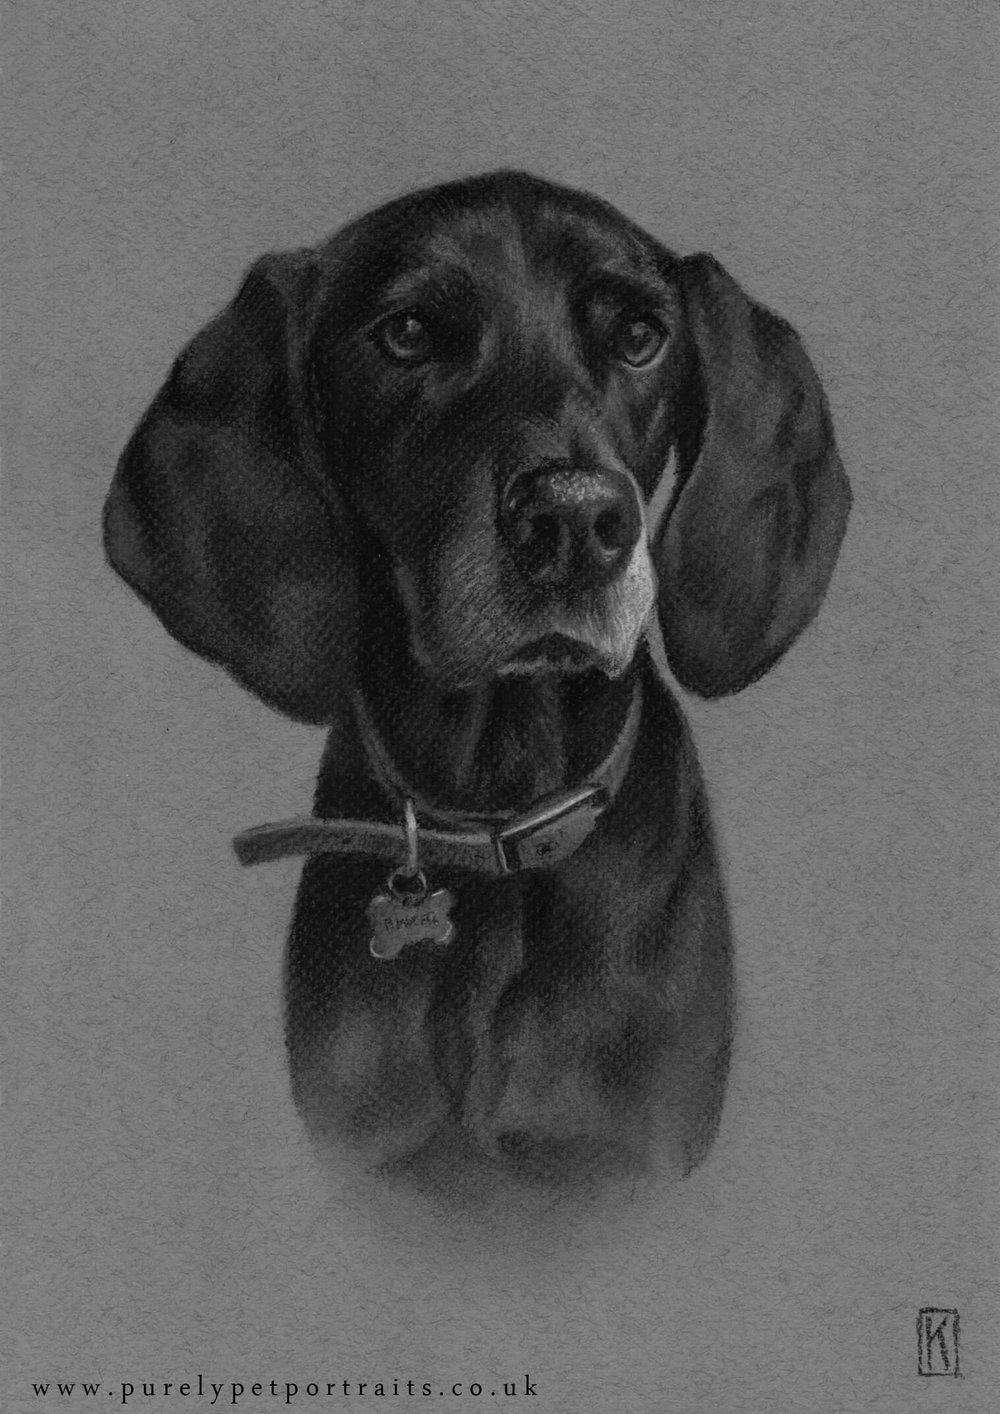 Portrait of Binker. A4 charcoal drawing on grey tinted paper.